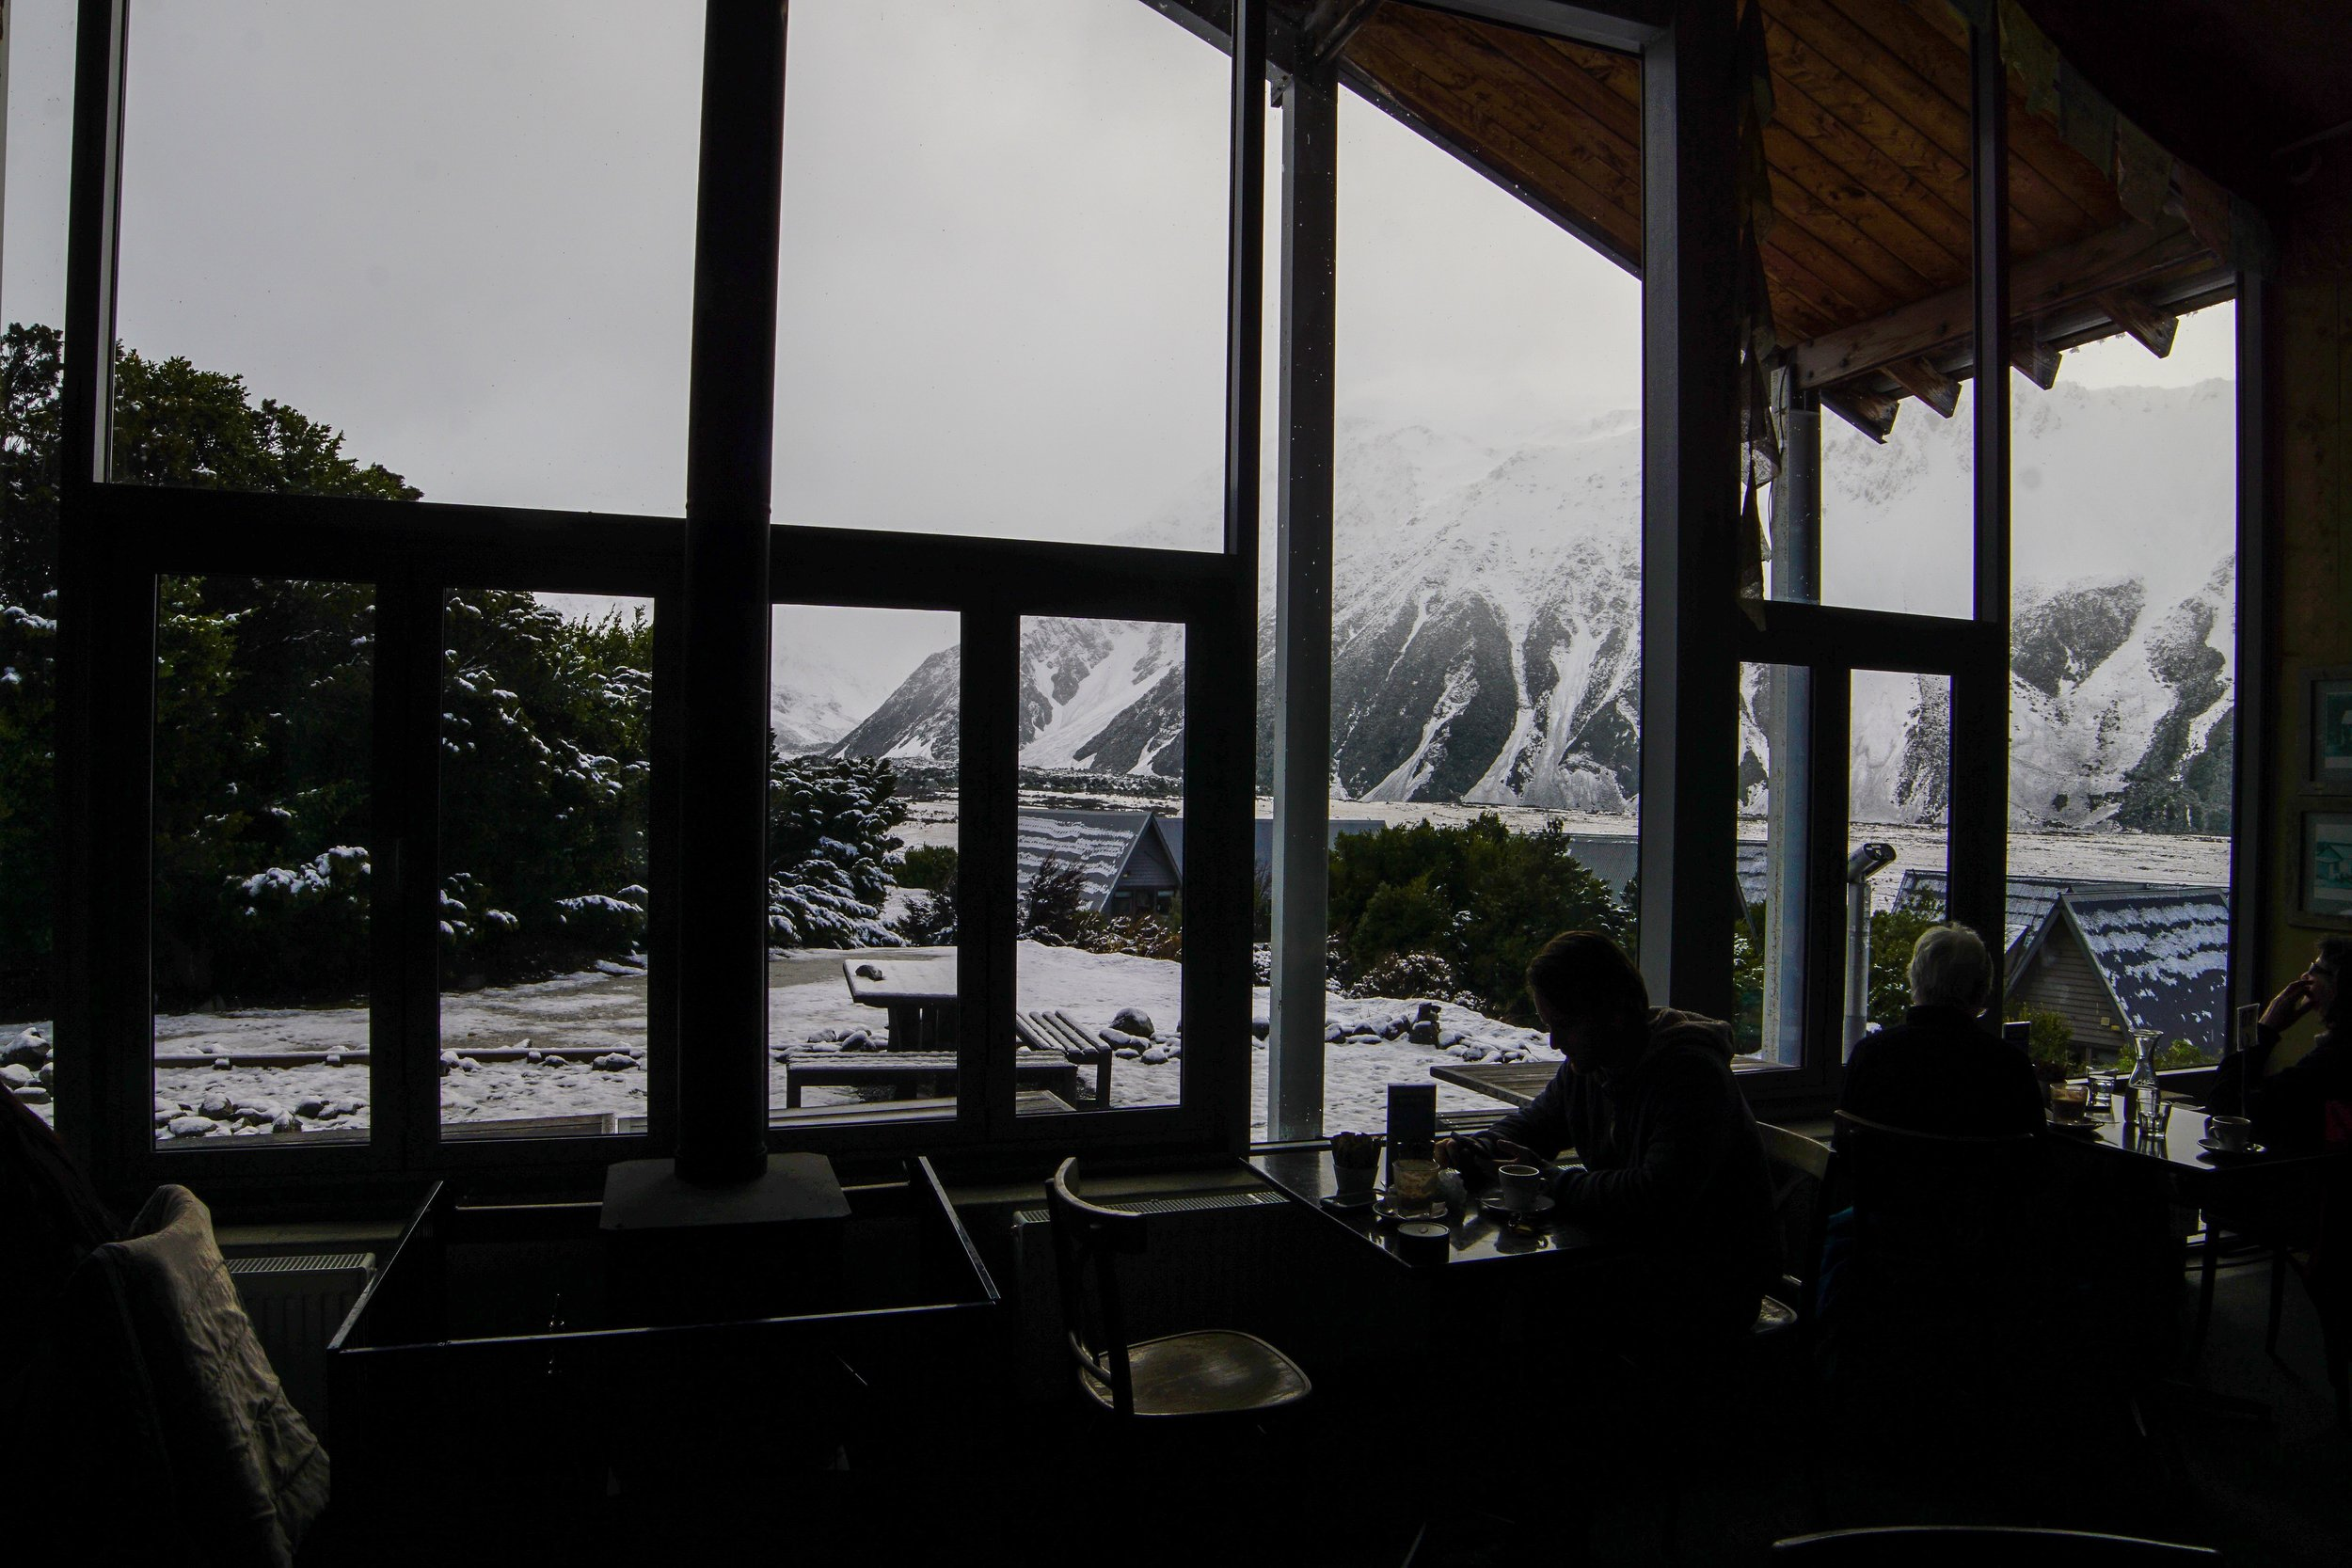 View from Mountaineer Cafe